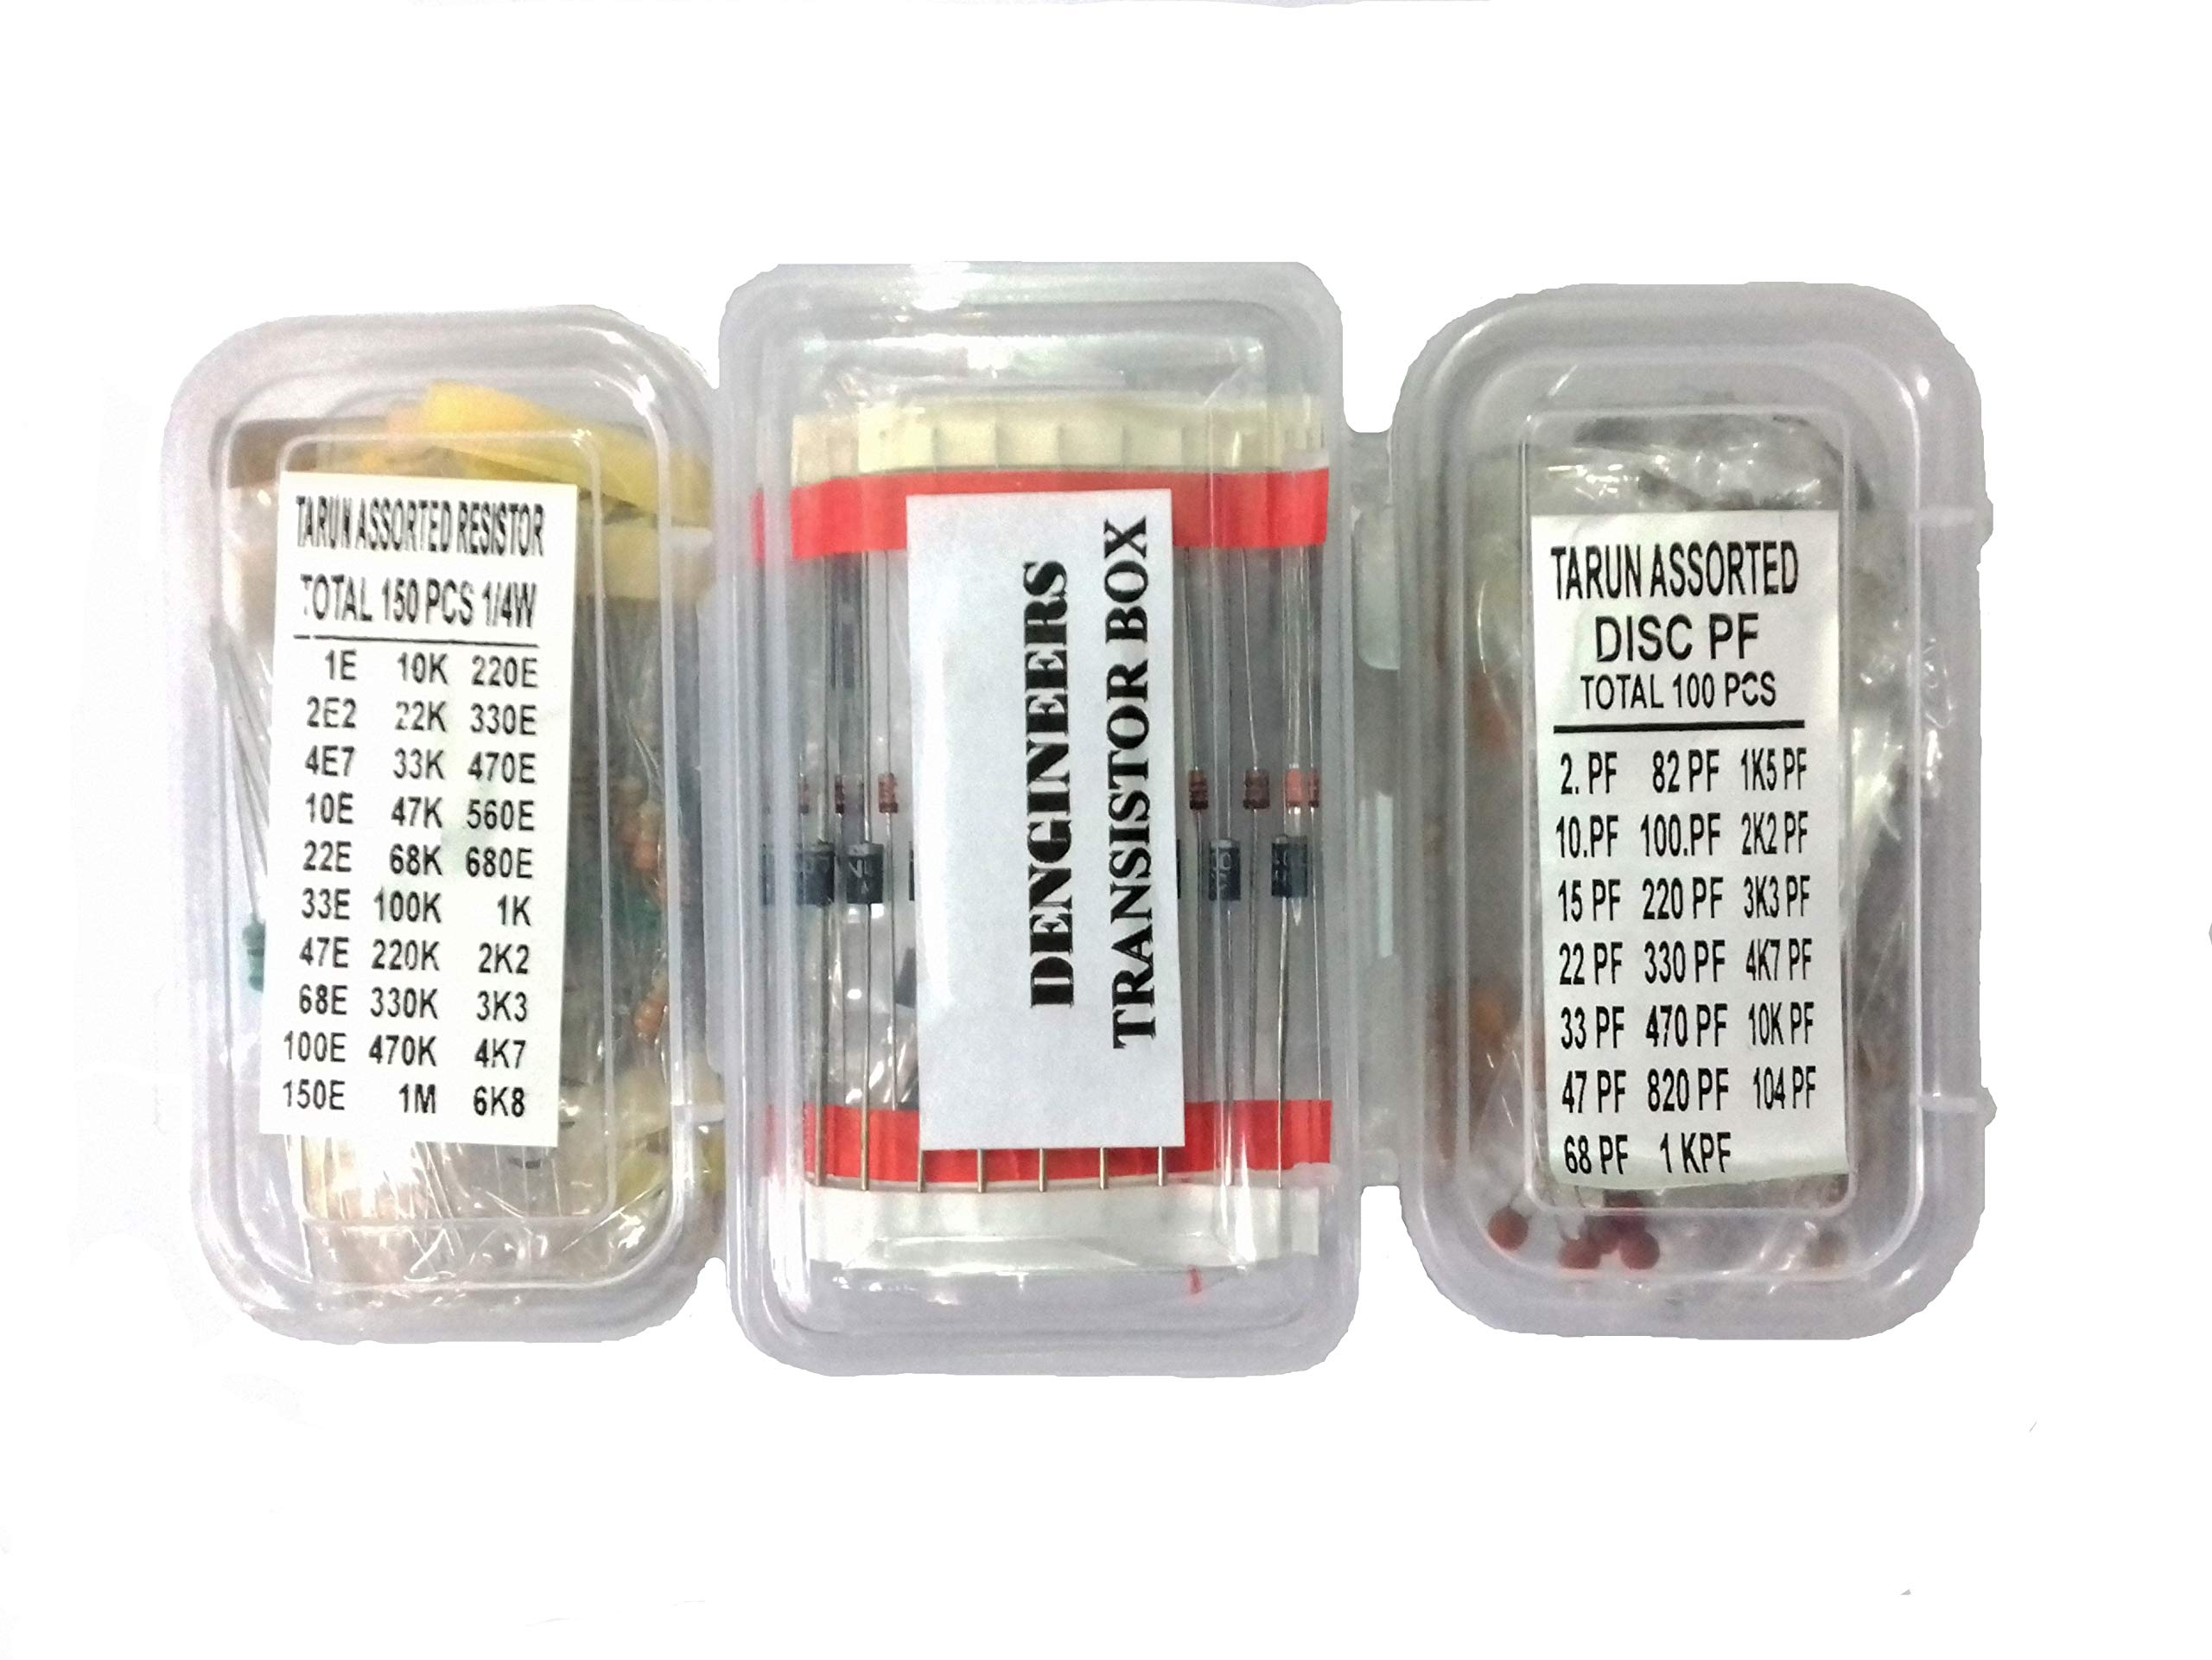 Generic CRT01 Dengineers Crt Capacitor-Resistor-Transistor Kit 60 Values, 310 Piece Components Box Pack For Engineering Projects, Diy Models Etc product image